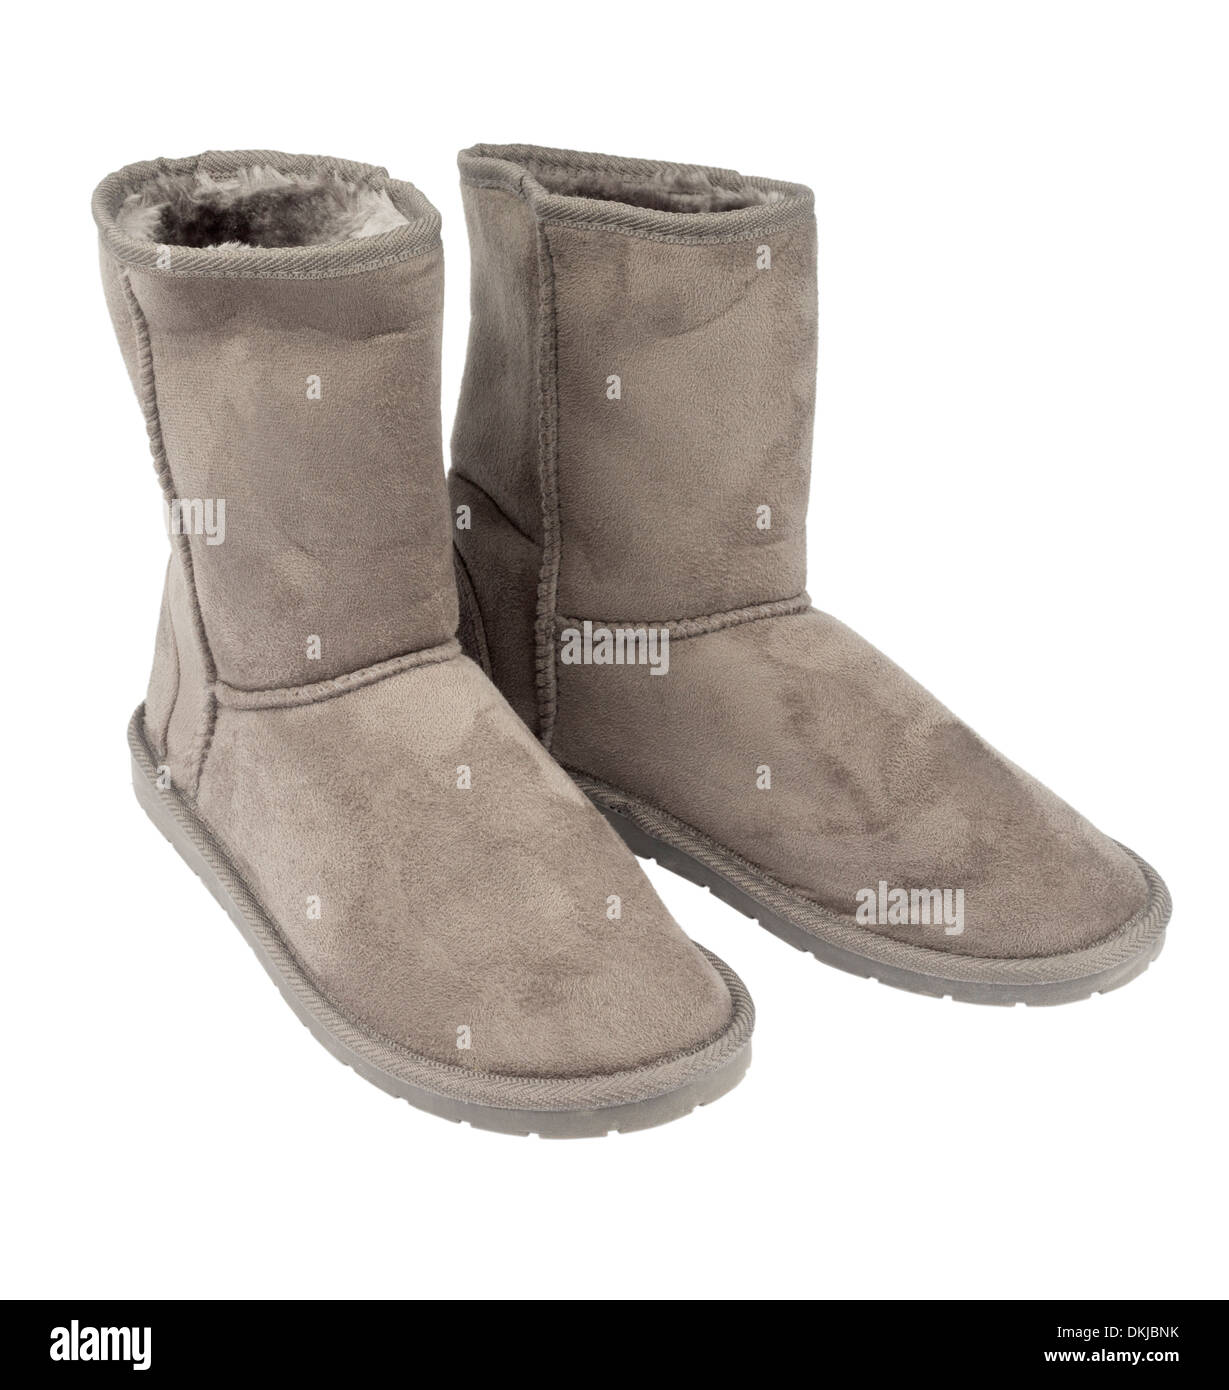 83458f8e7d6 Uggs Stock Photos & Uggs Stock Images - Alamy